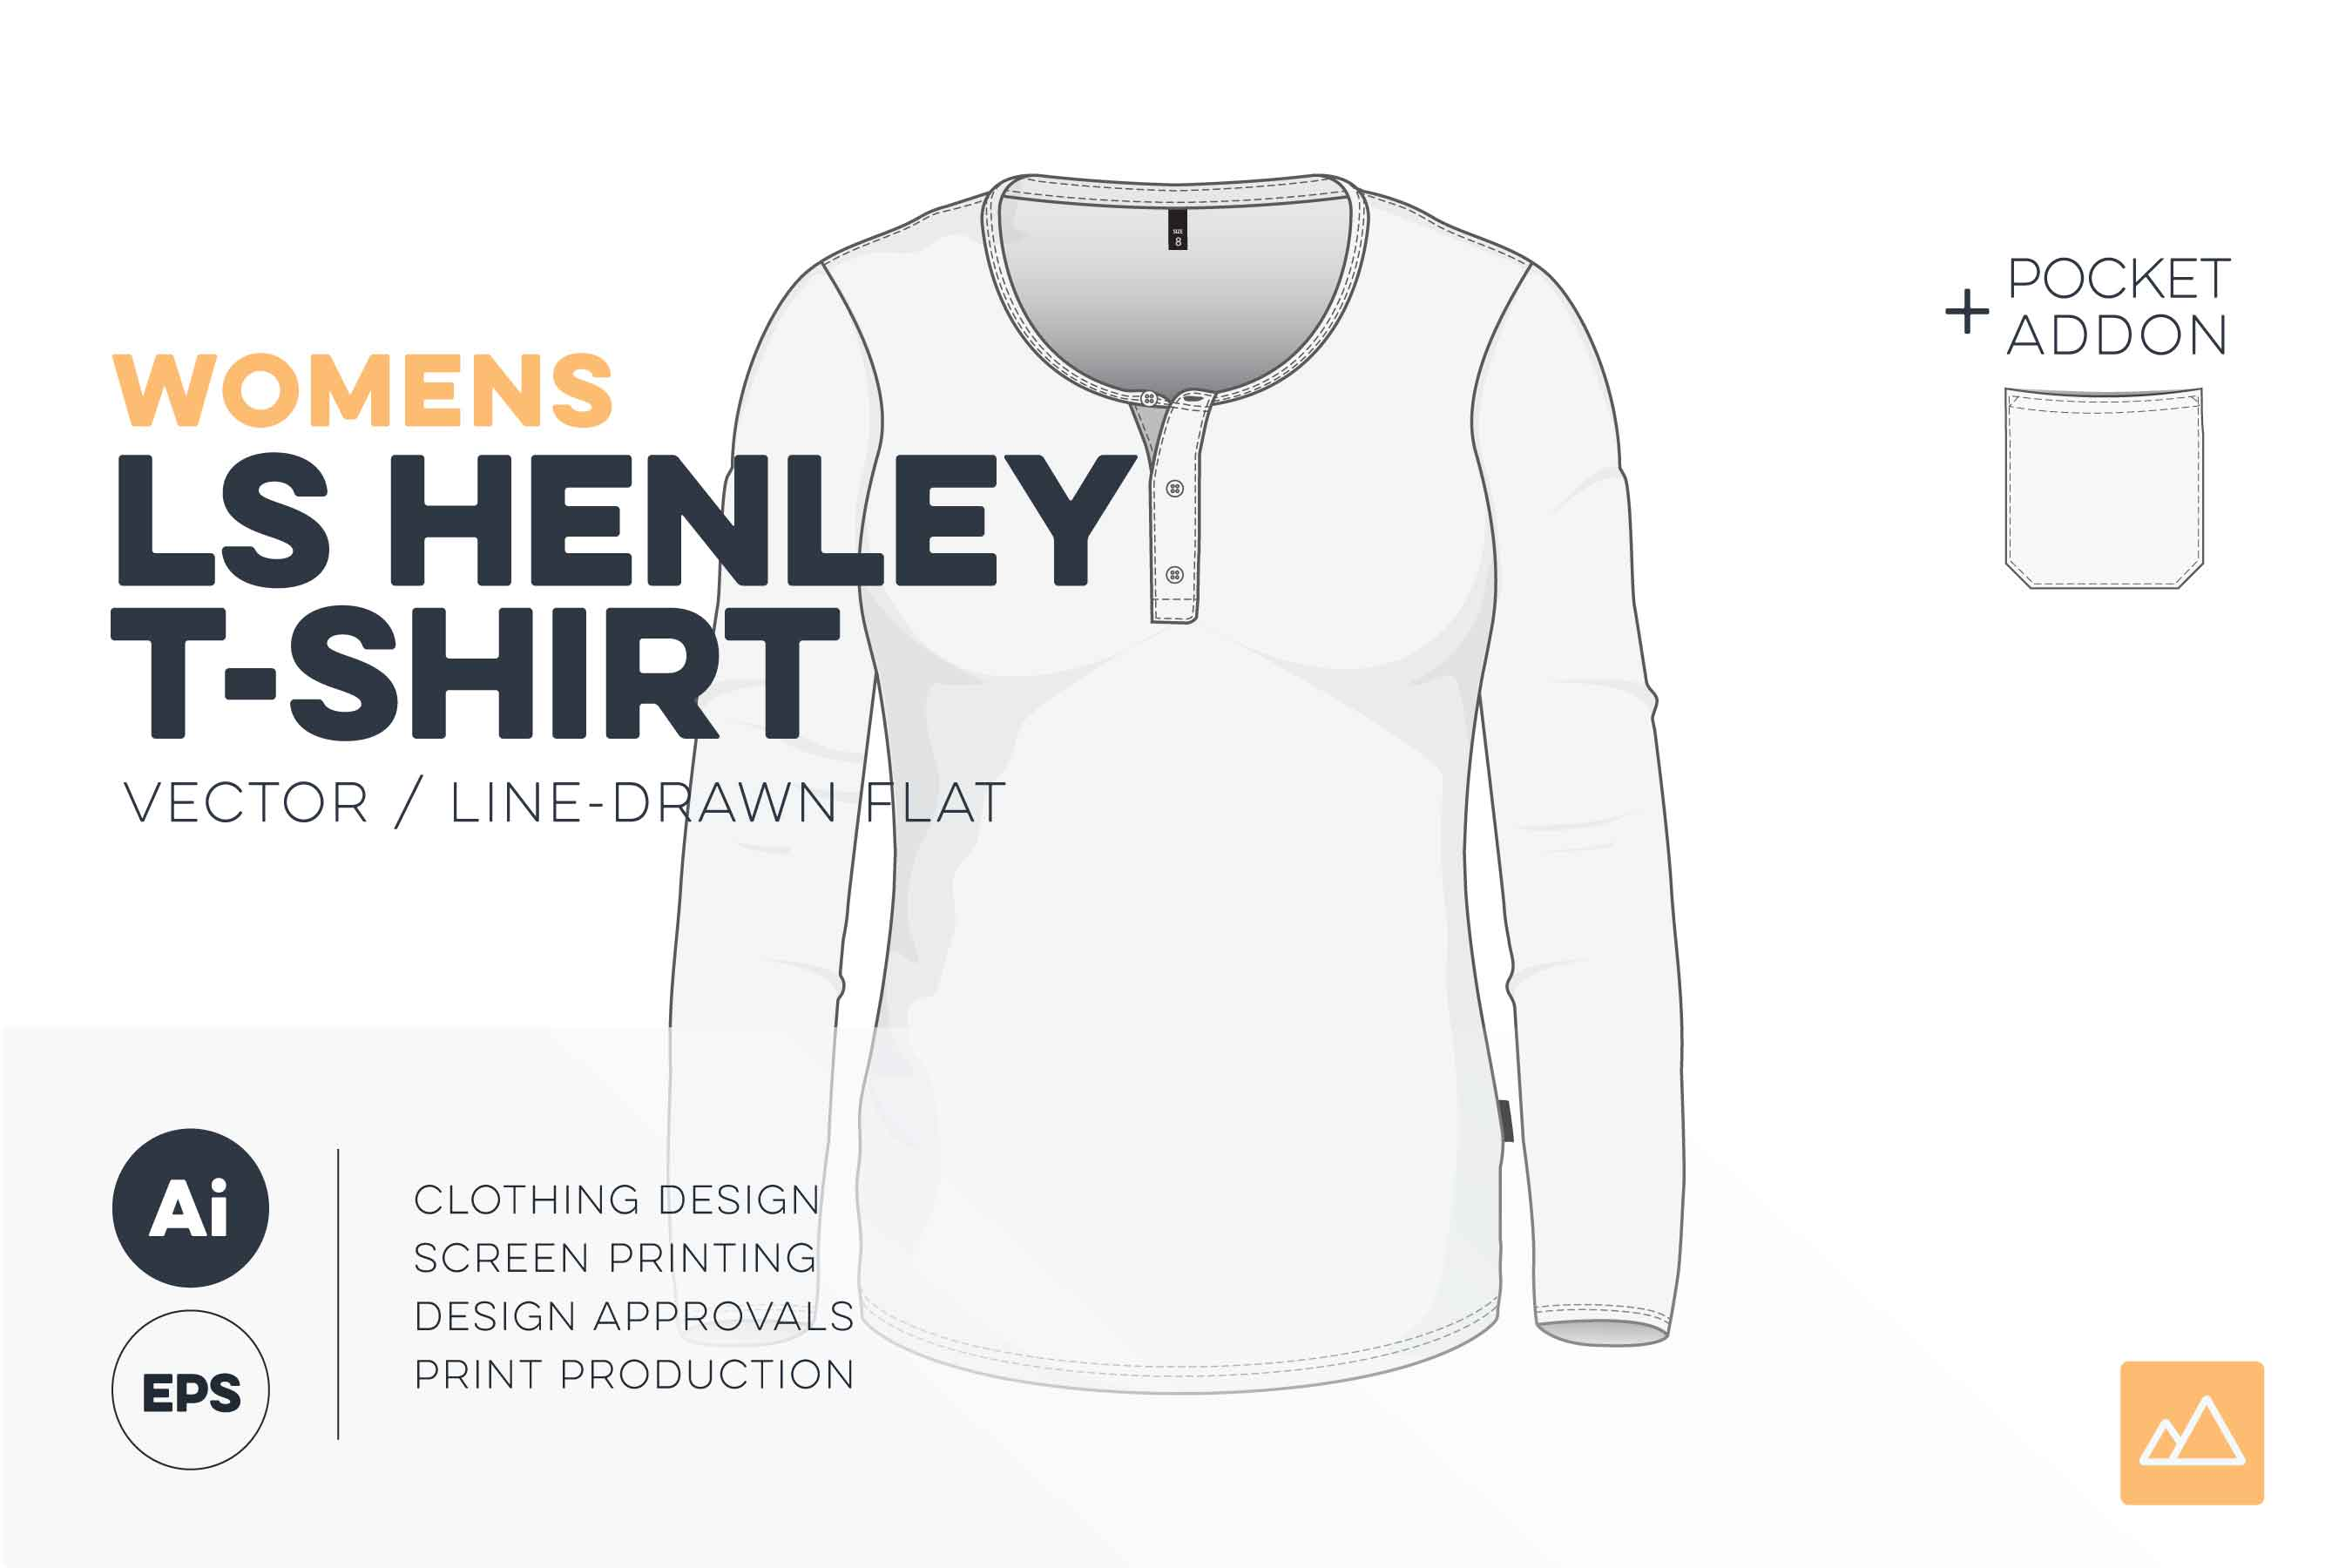 womens long sleeve henley t-shirt template vector HERO